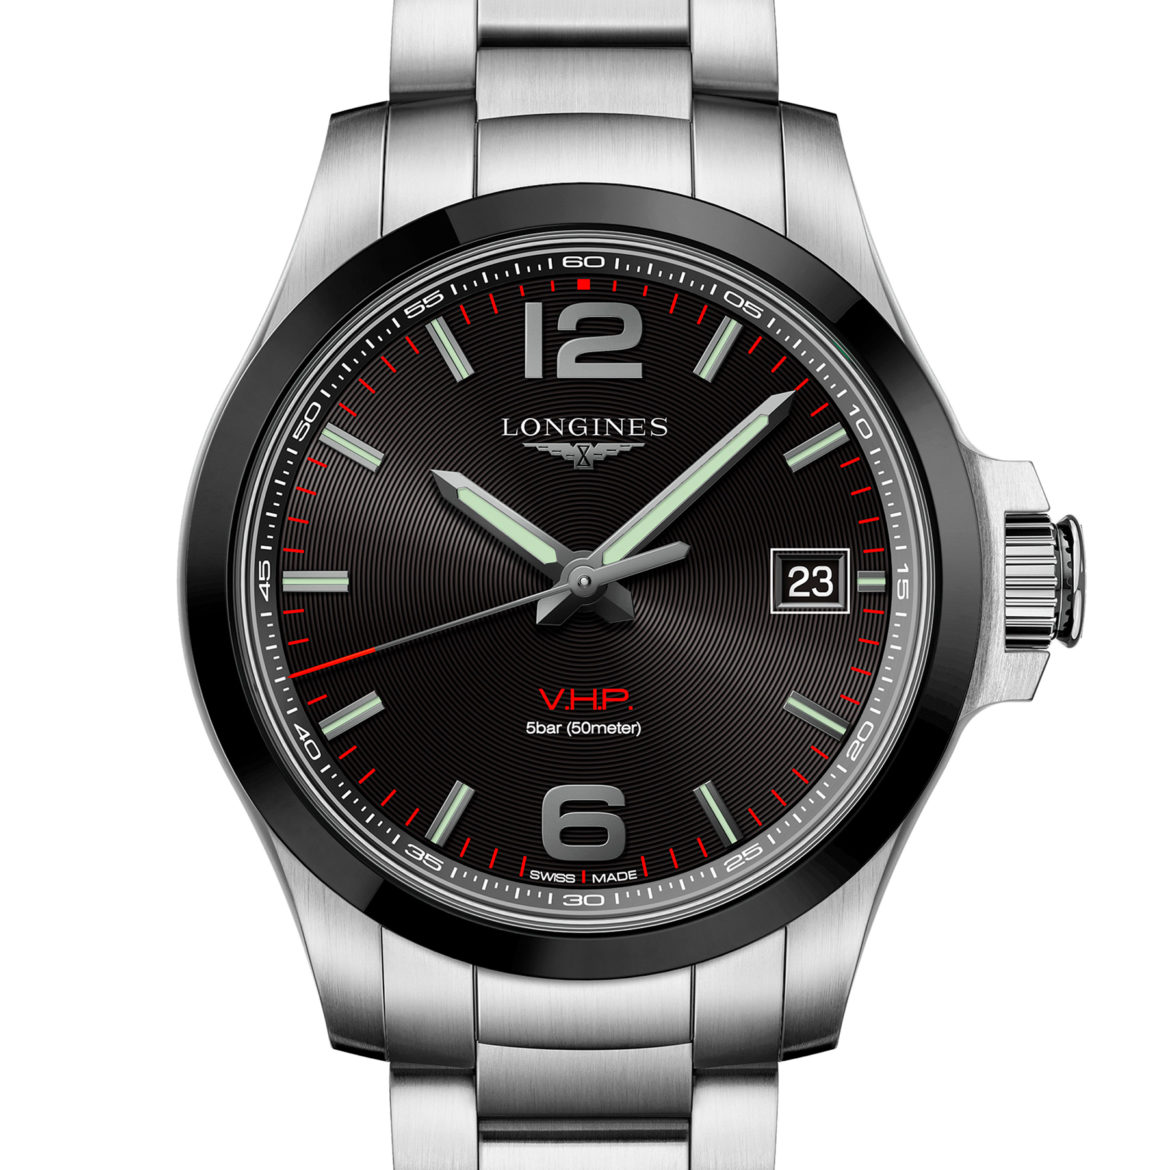 LONGINES</br/>Conquest VPH </br/>L37194566